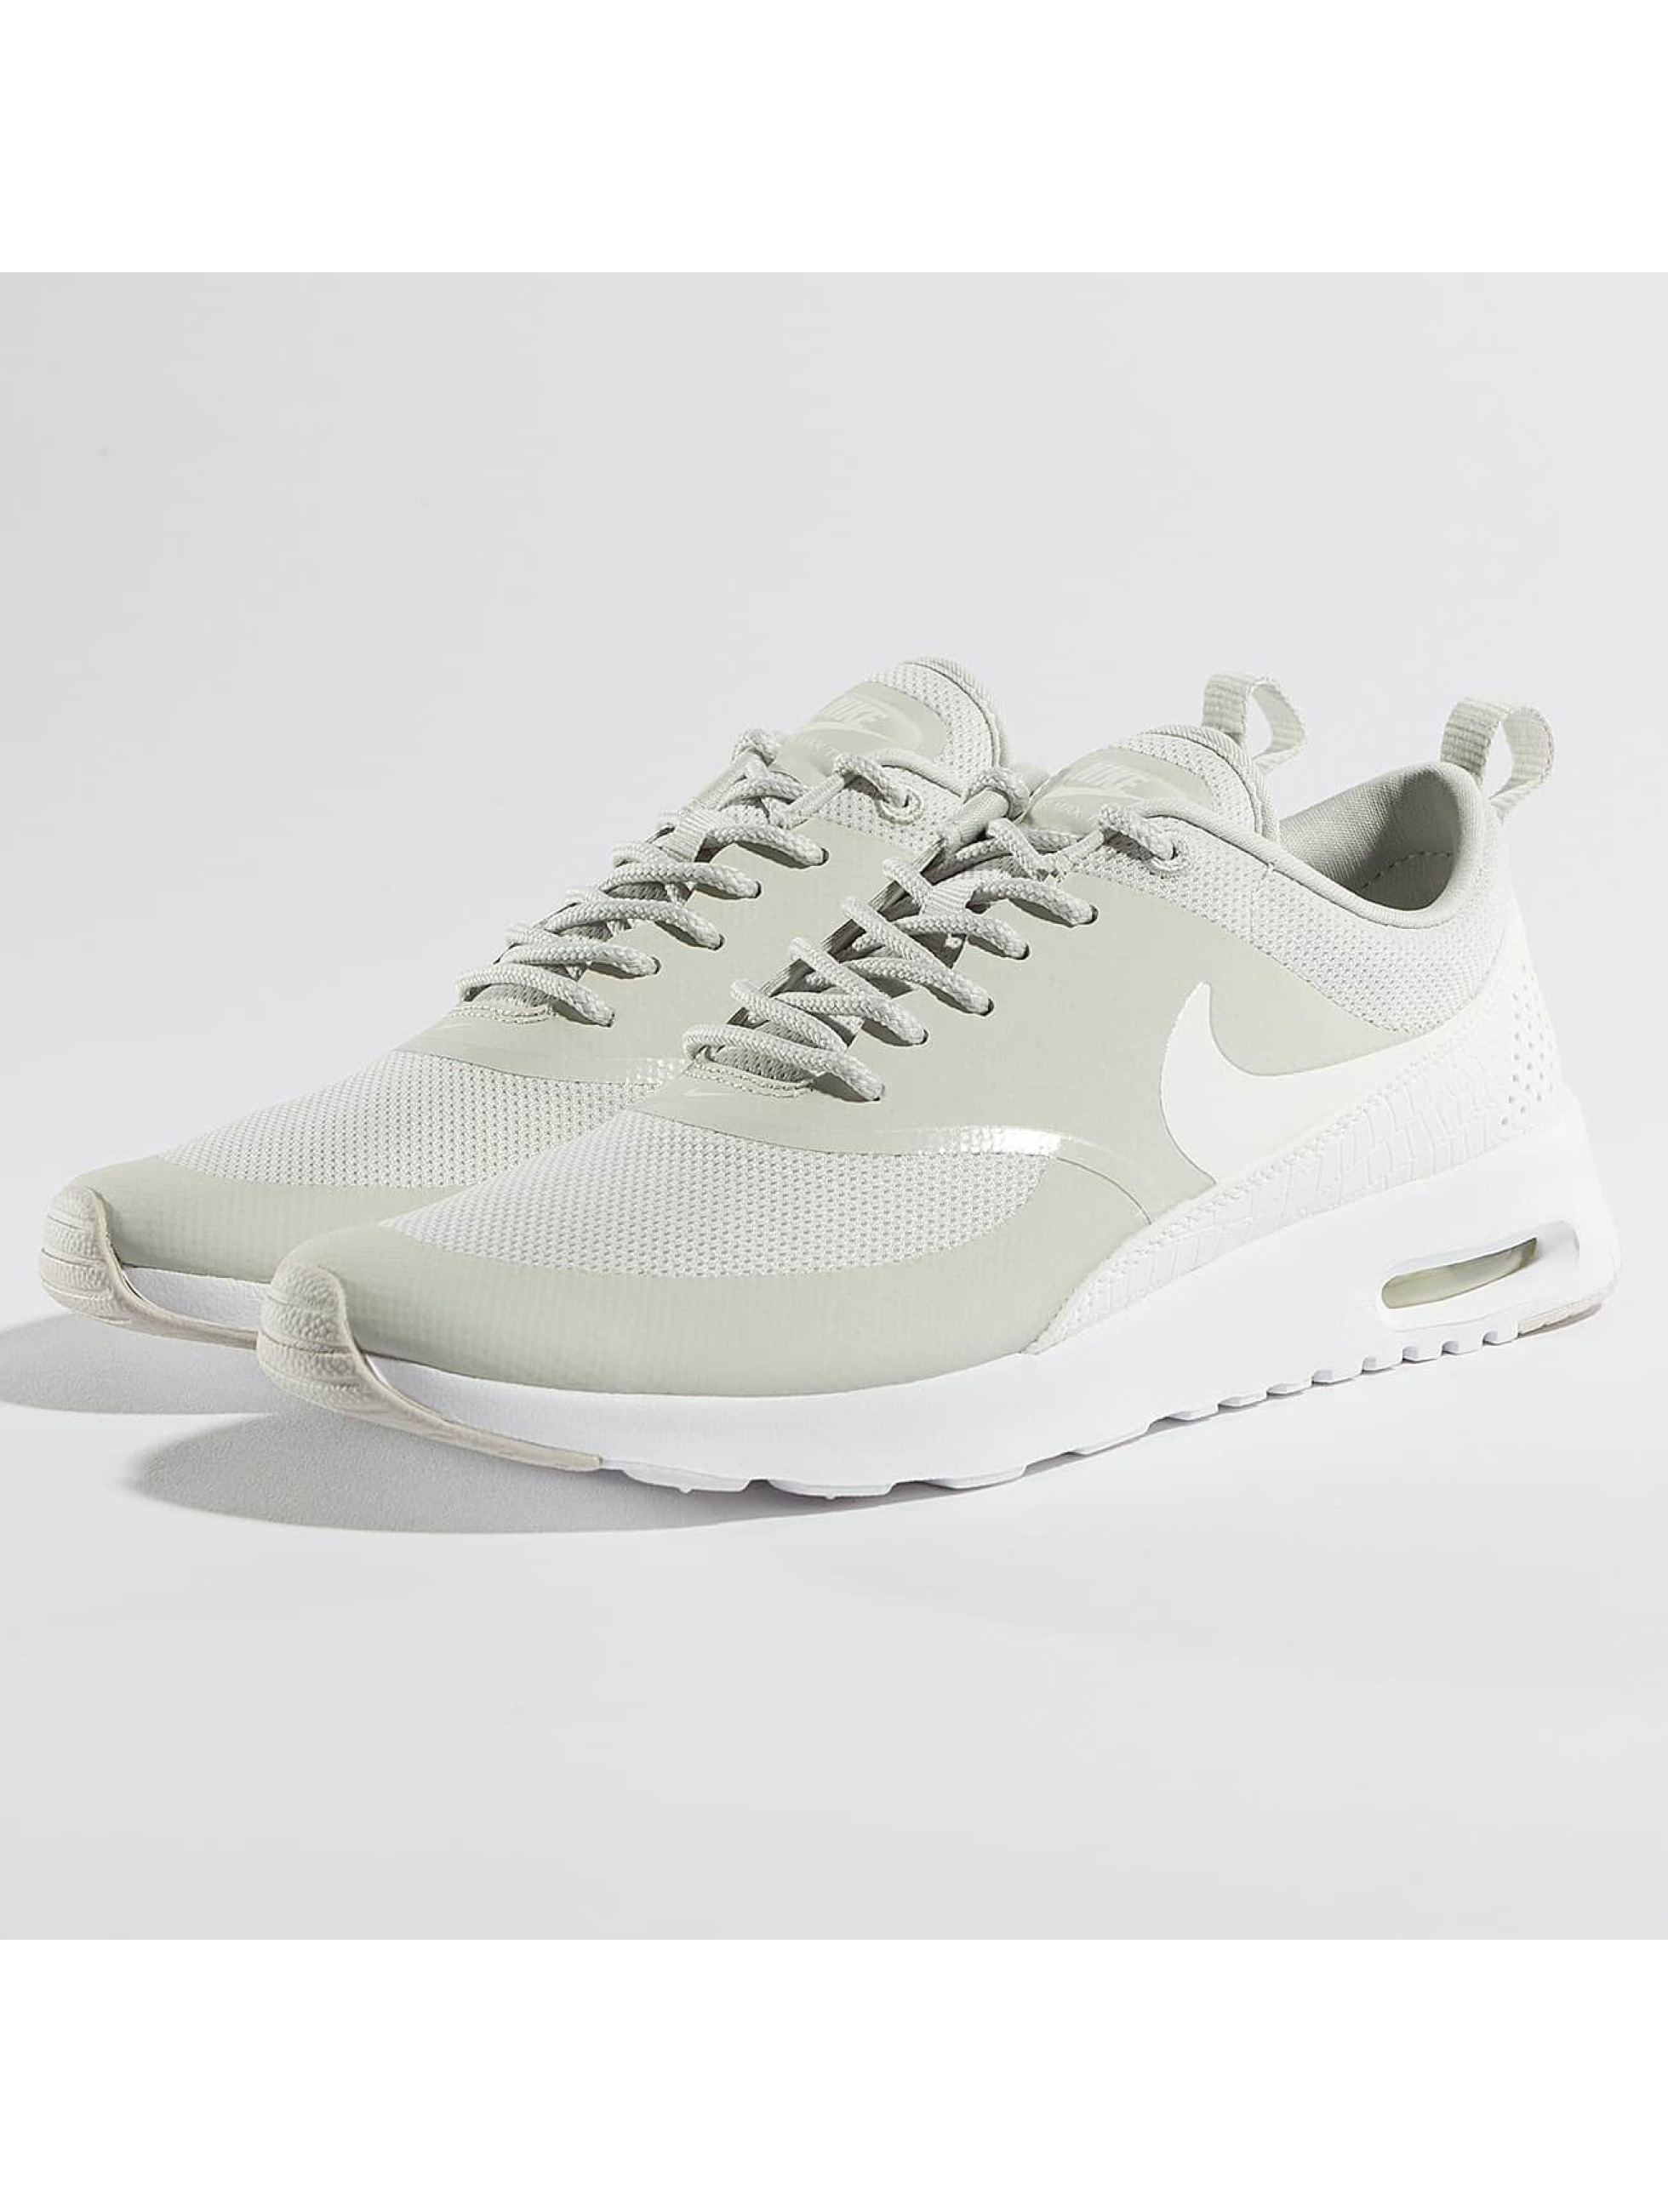 Nike Damen Sneaker Air Max Thea In Beige 398422